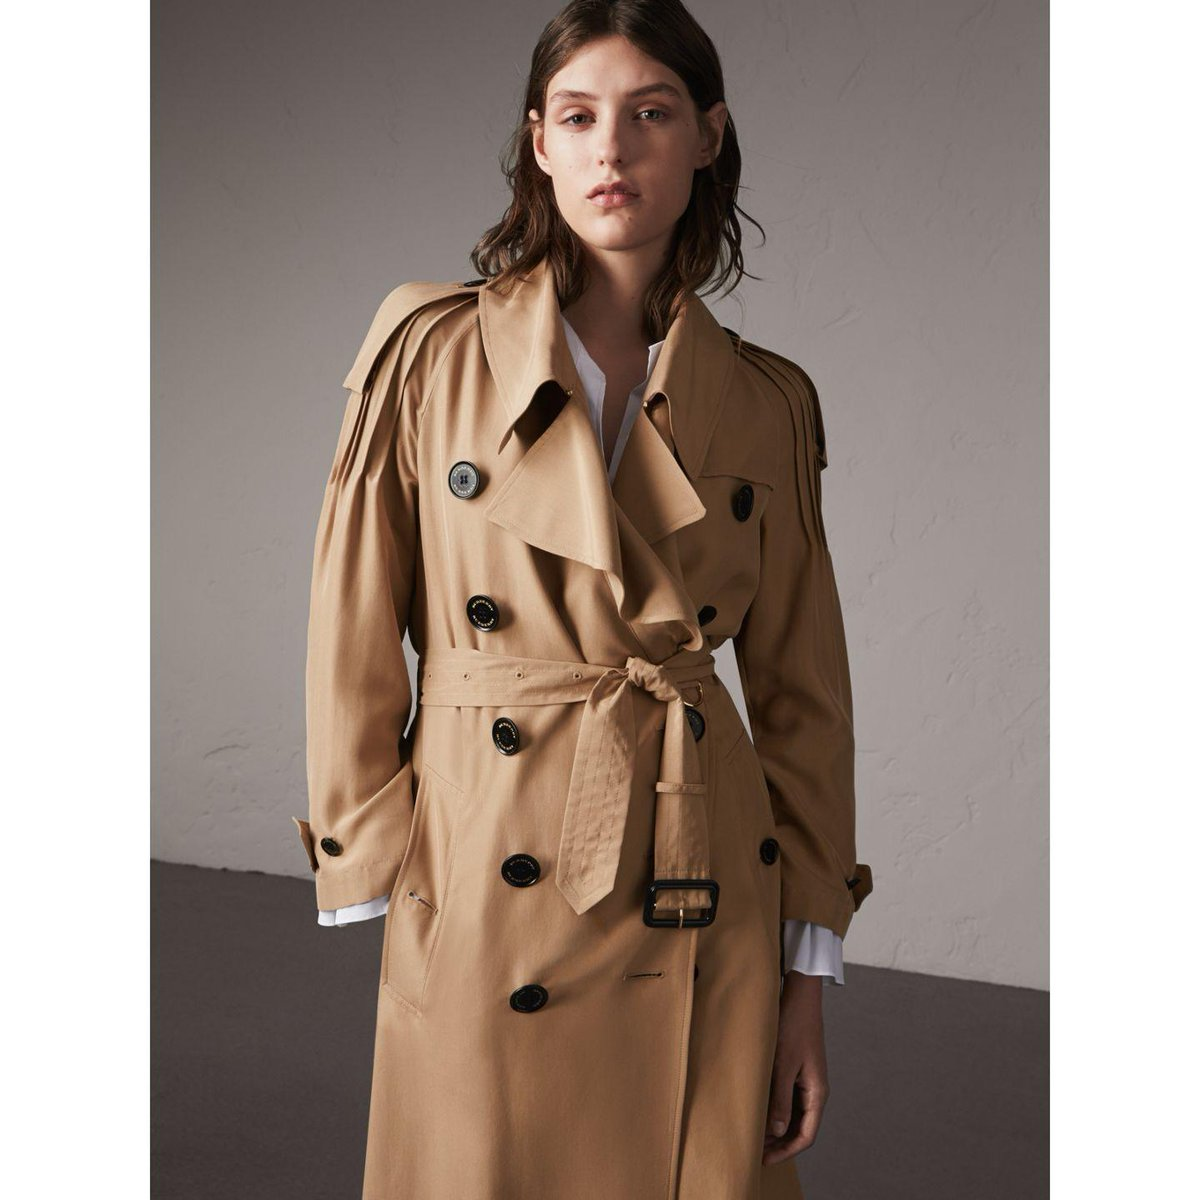 An oversize @Burberrytrench coat with ruffle detail. Shop the look...